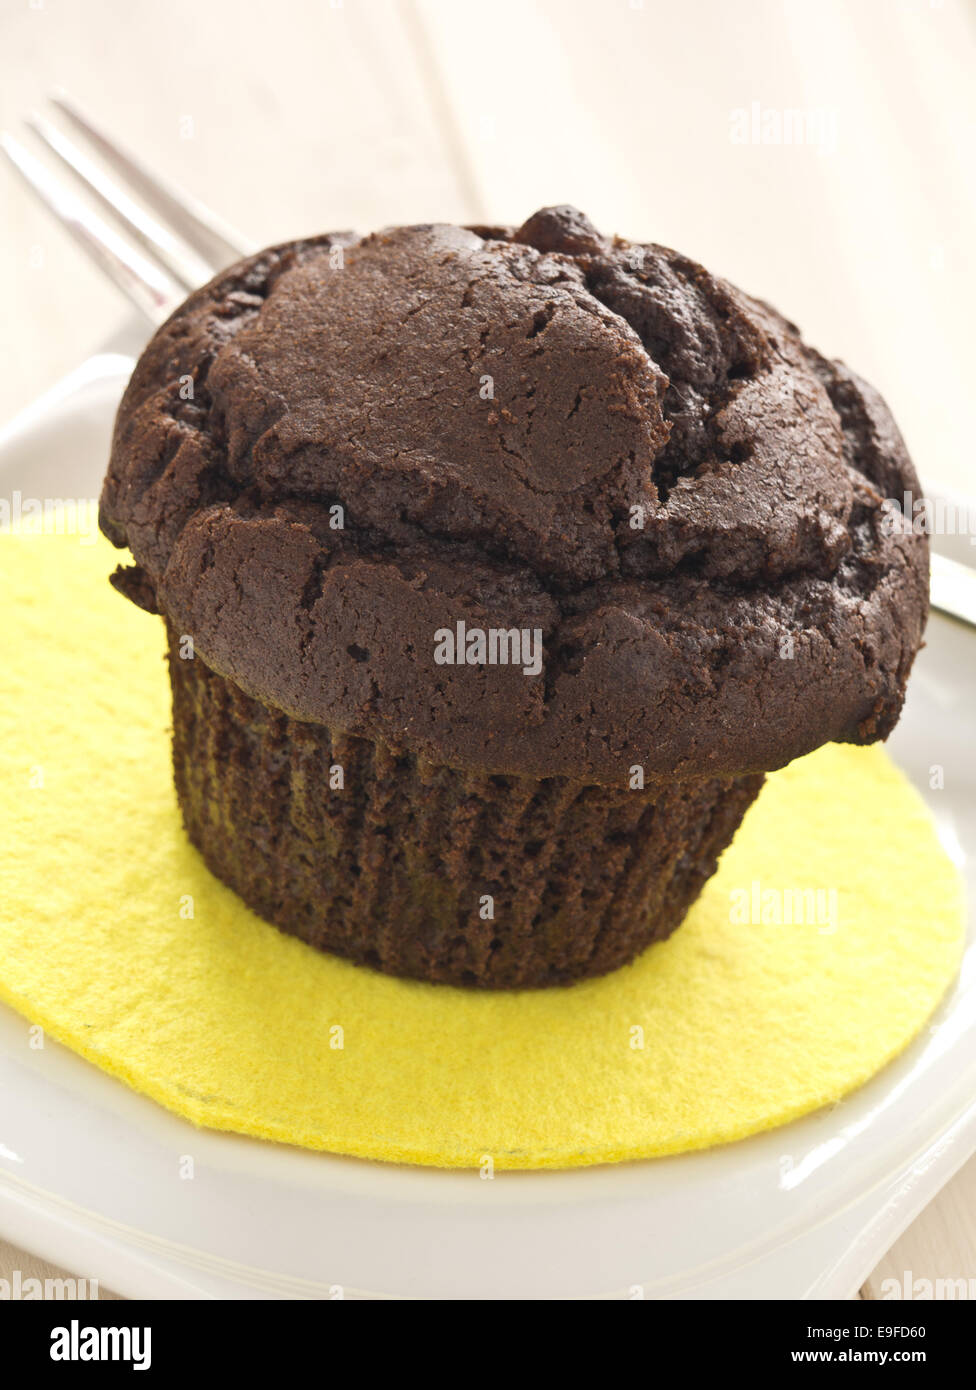 Chocolate muffin on a plate Stock Photo